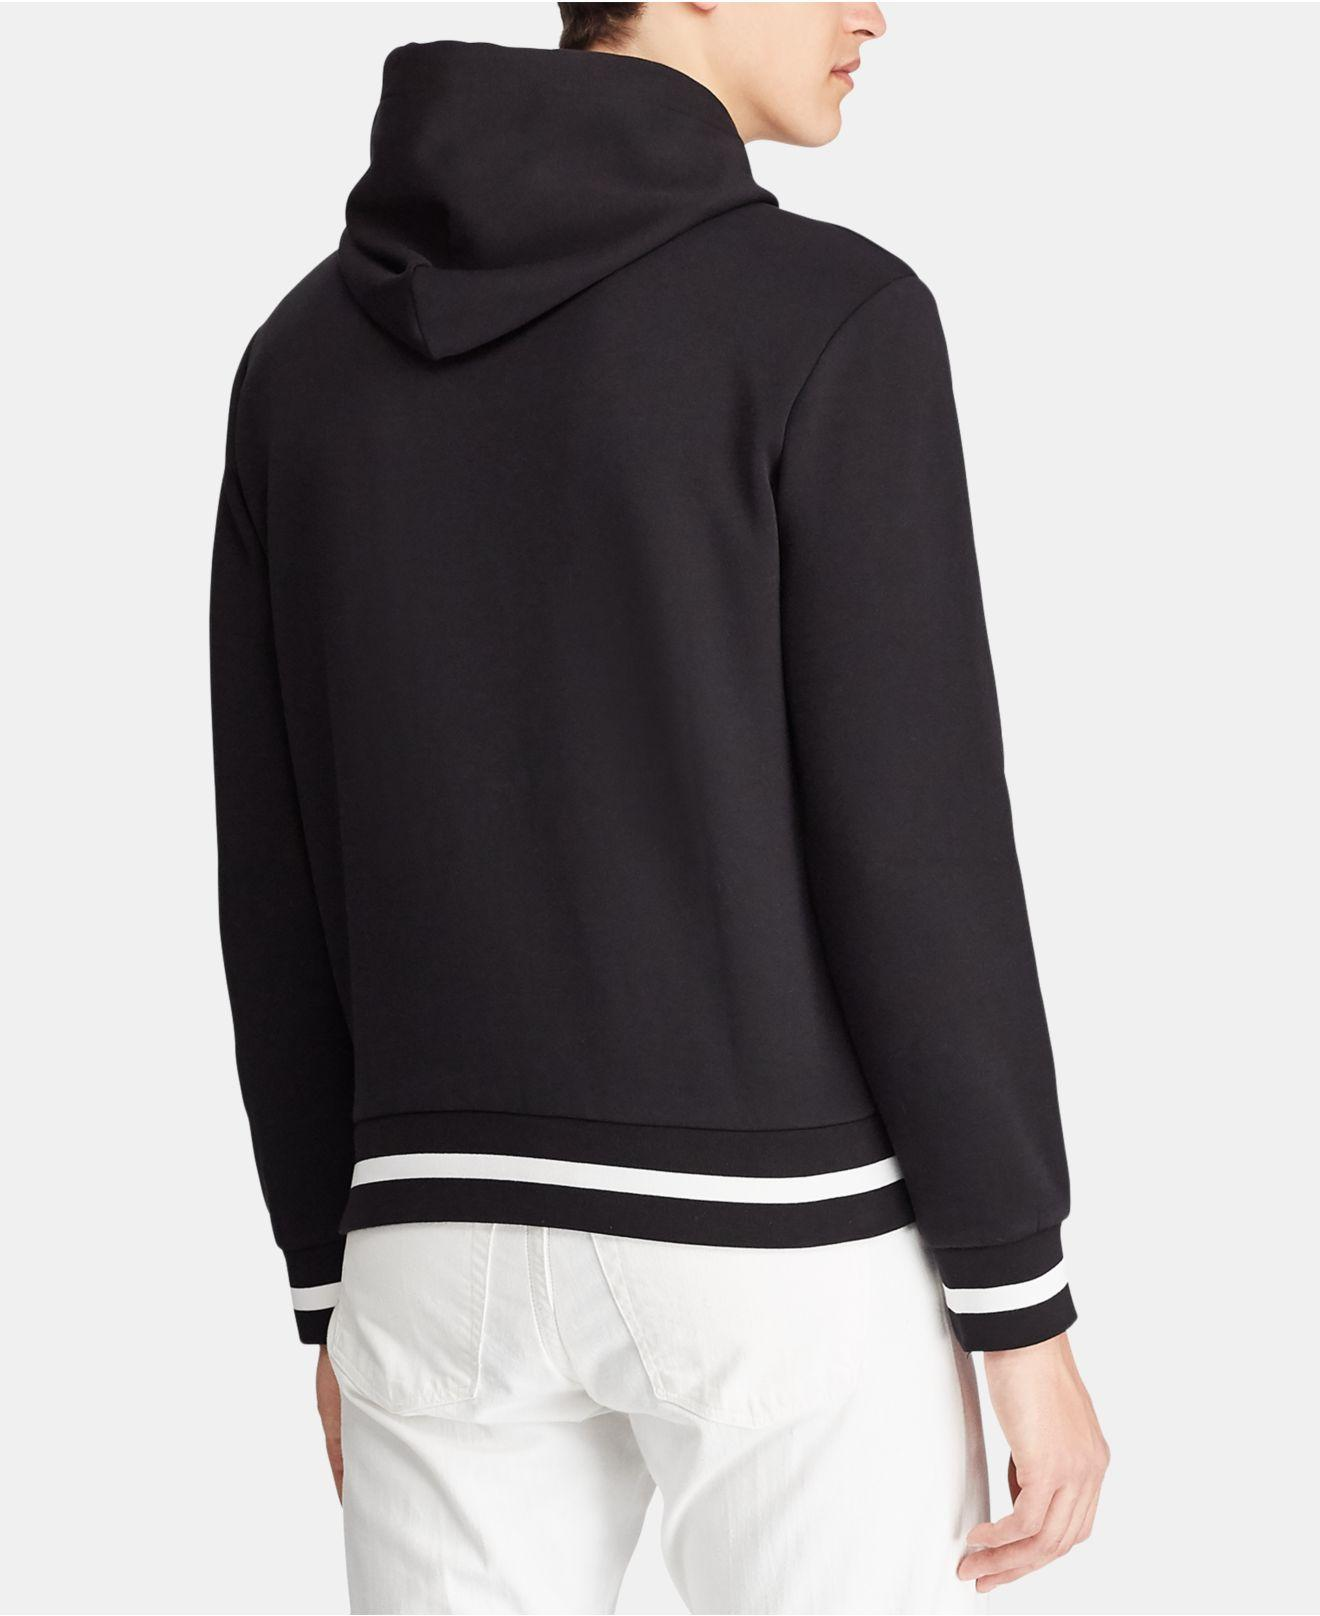 c7d022d8eed0 Lyst - Polo Ralph Lauren Double-knit Graphic Hoodie